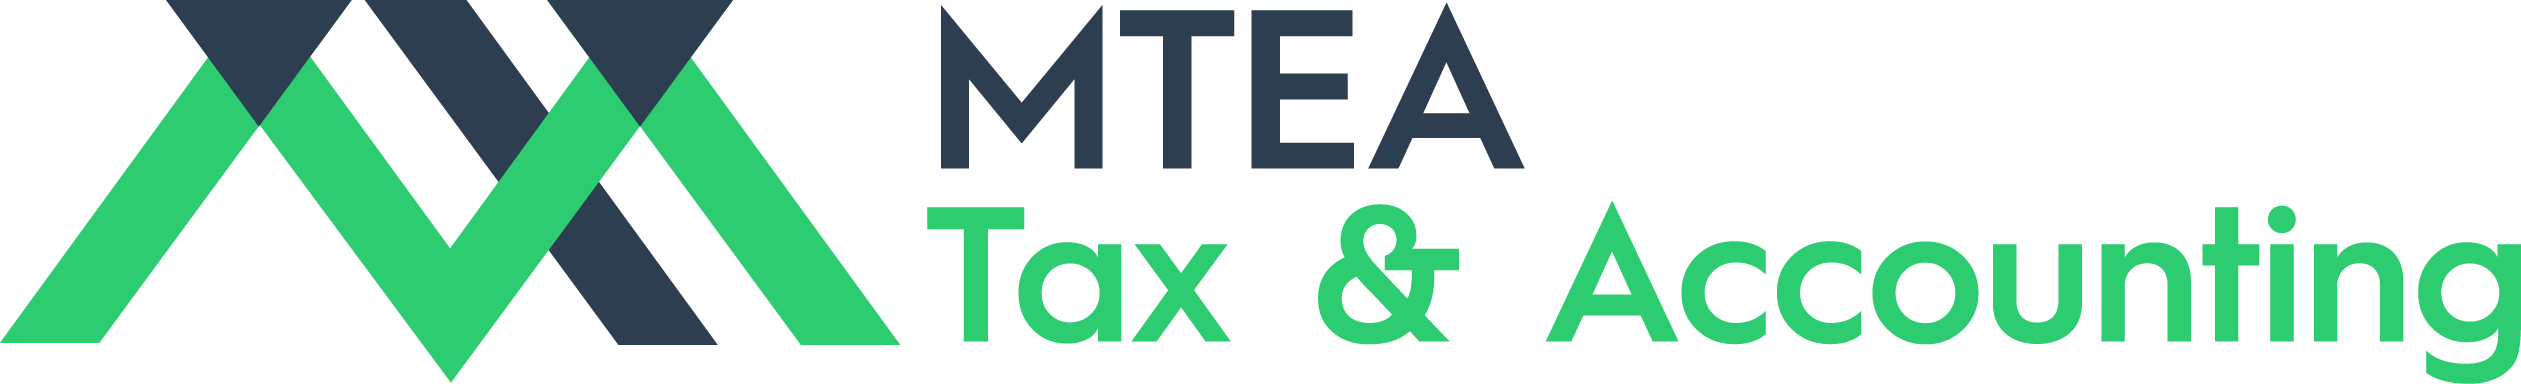 MTEA Tax & Accounting